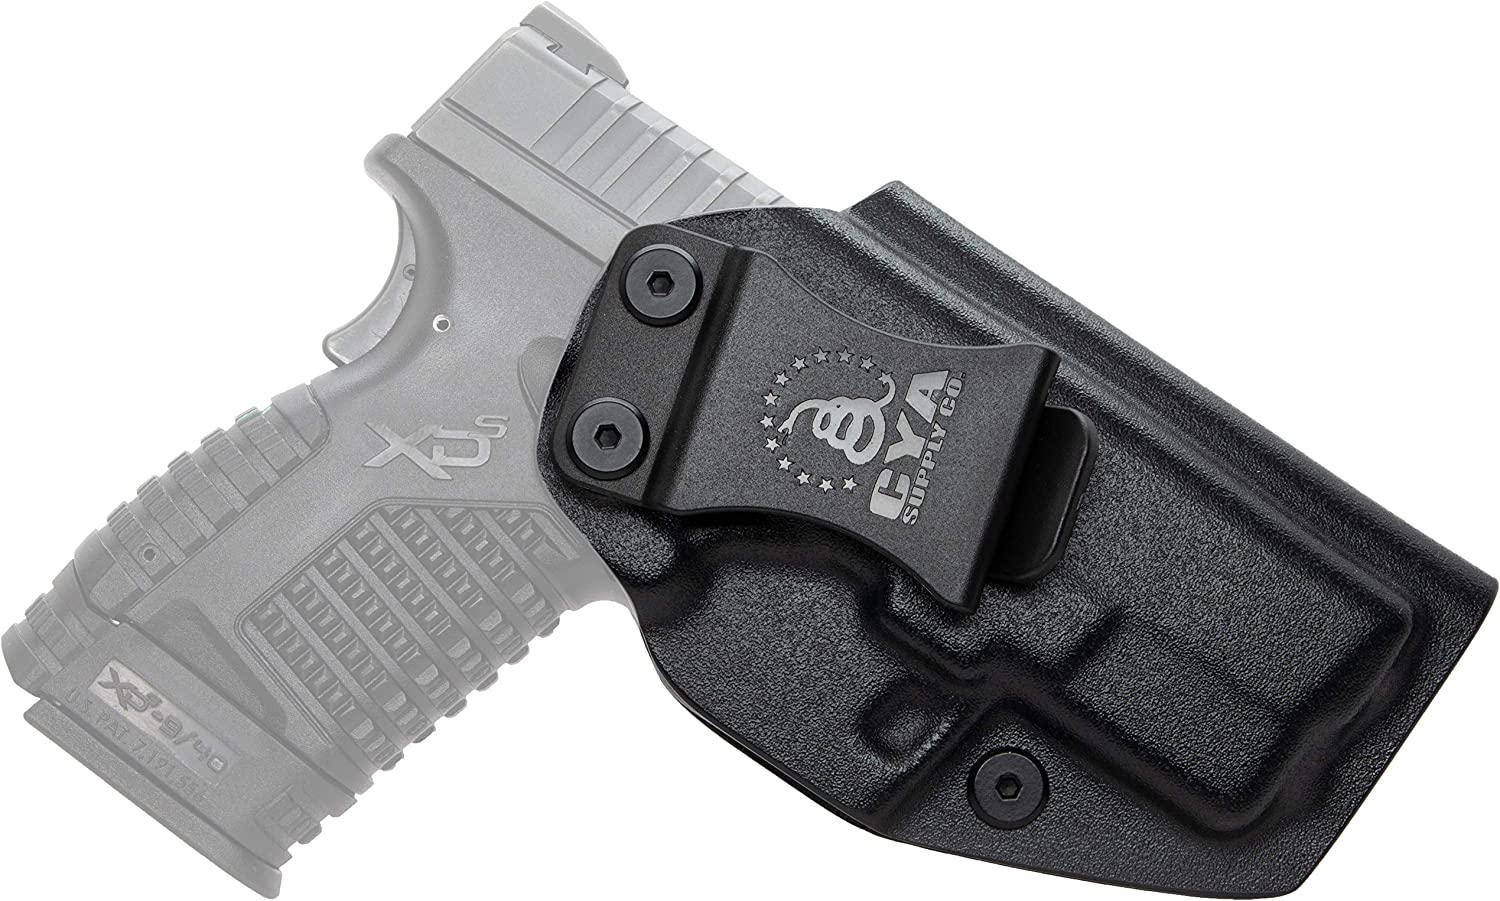 """CYA Supply Co. Fits Springfield XD-S 3.3"""" & Springfield xds holster with Light"""